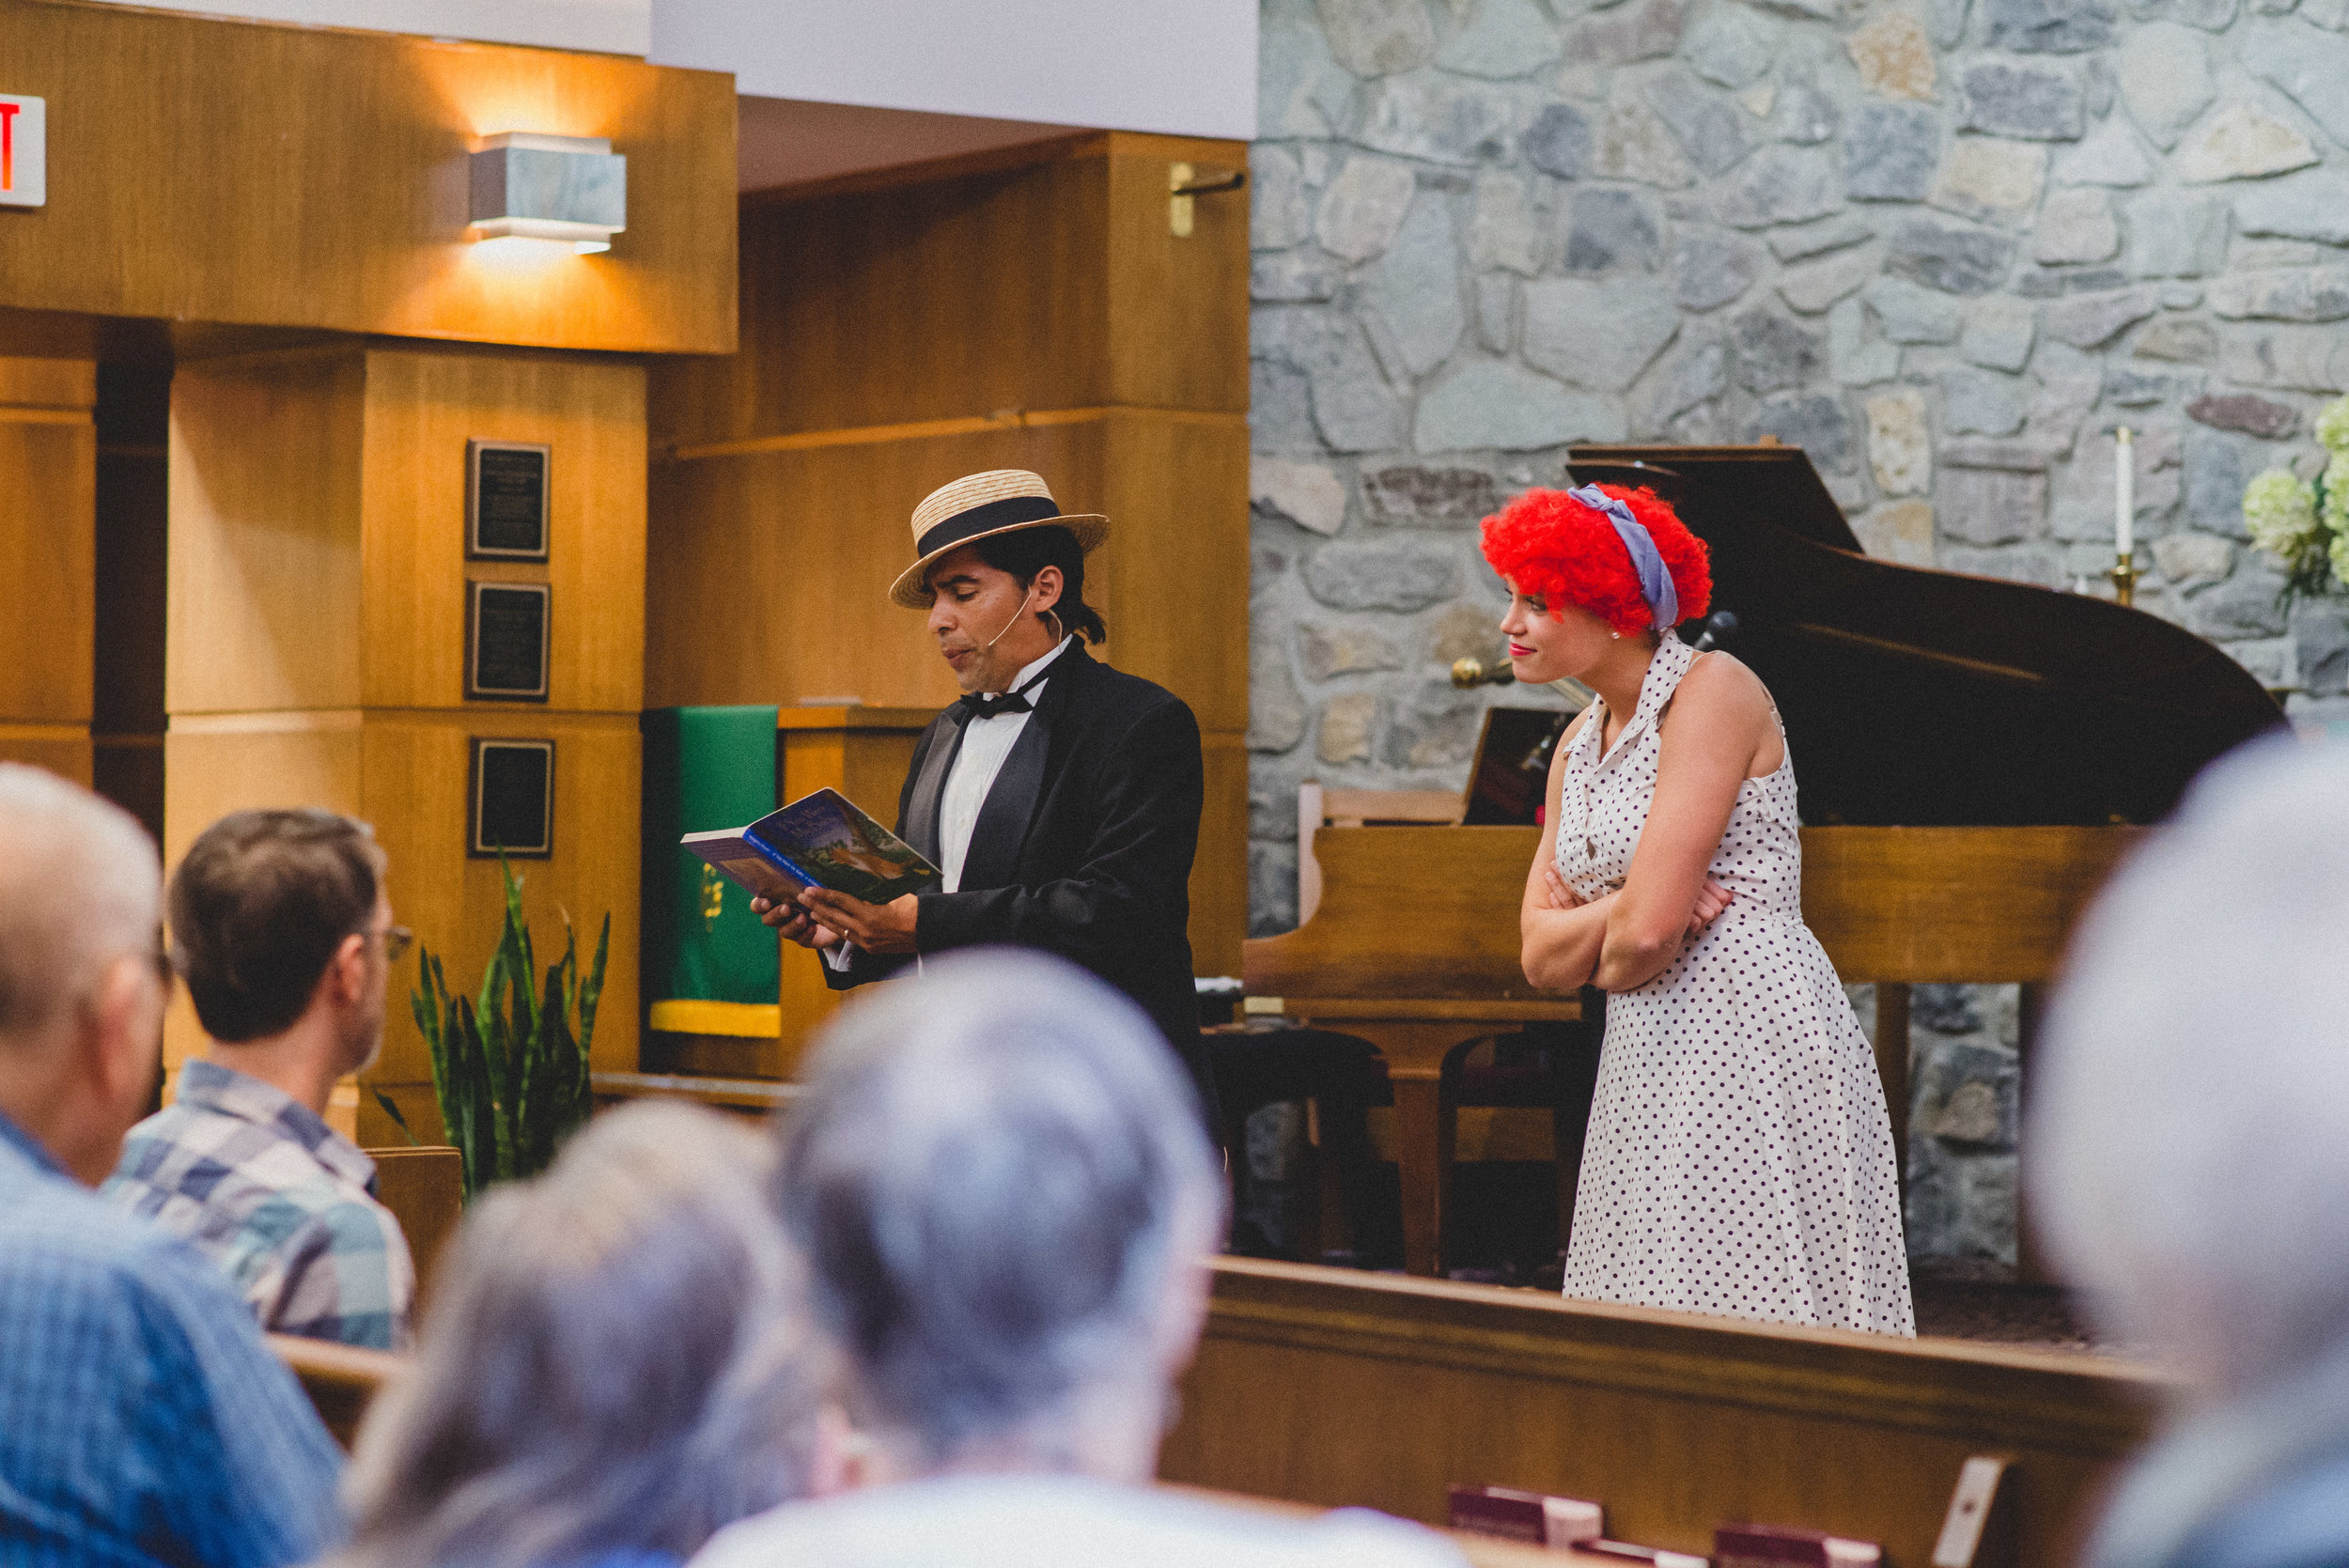 Interspersed between the Ginger Ale's performances were short comedy bits by Robert Munoz, drama expert, and Amanda Byrd, near peer manager. Taking on the roles of the beloved Lucy and Ricky Ricardo, the audience was audibly delighted by their performances.